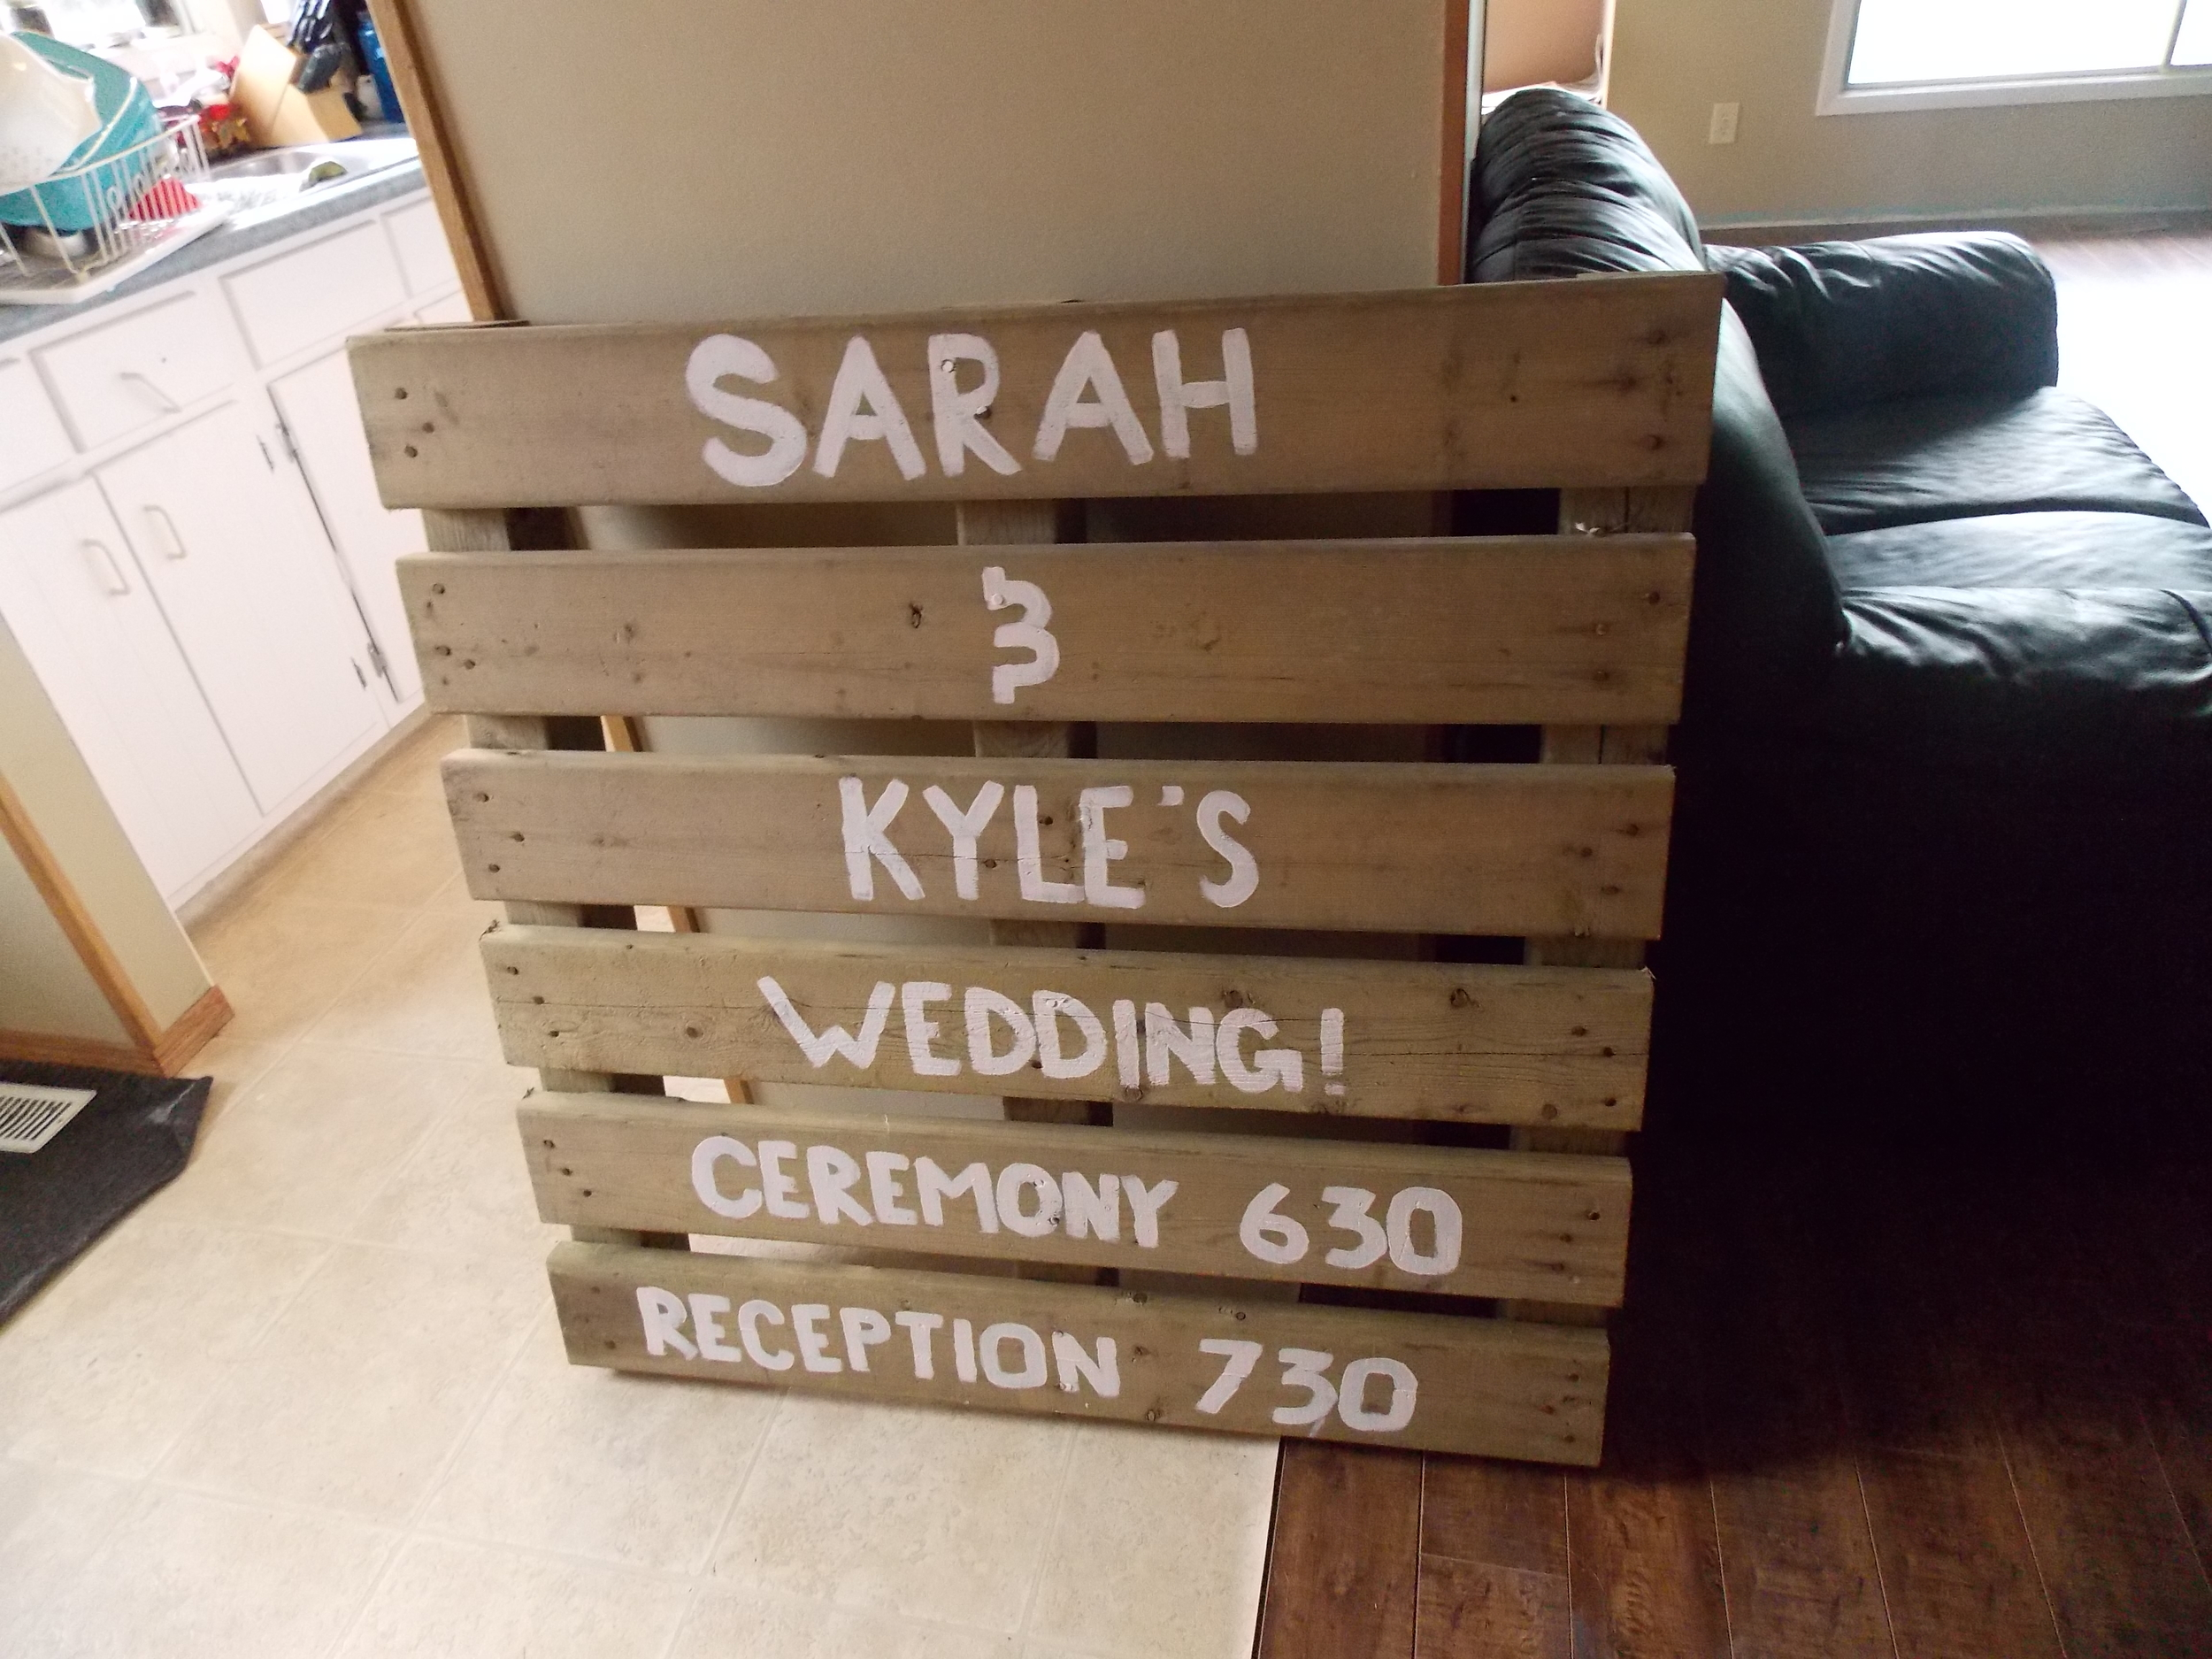 We made 2 signs like this because our venue is off a few gravel roads. One will be at the highway where guests will need to turn  off, and this one will be at the intersection of the venue! Just used some old pallets and white wall paint that I had laying around, and boom! A super cute, $0 decoration piece.